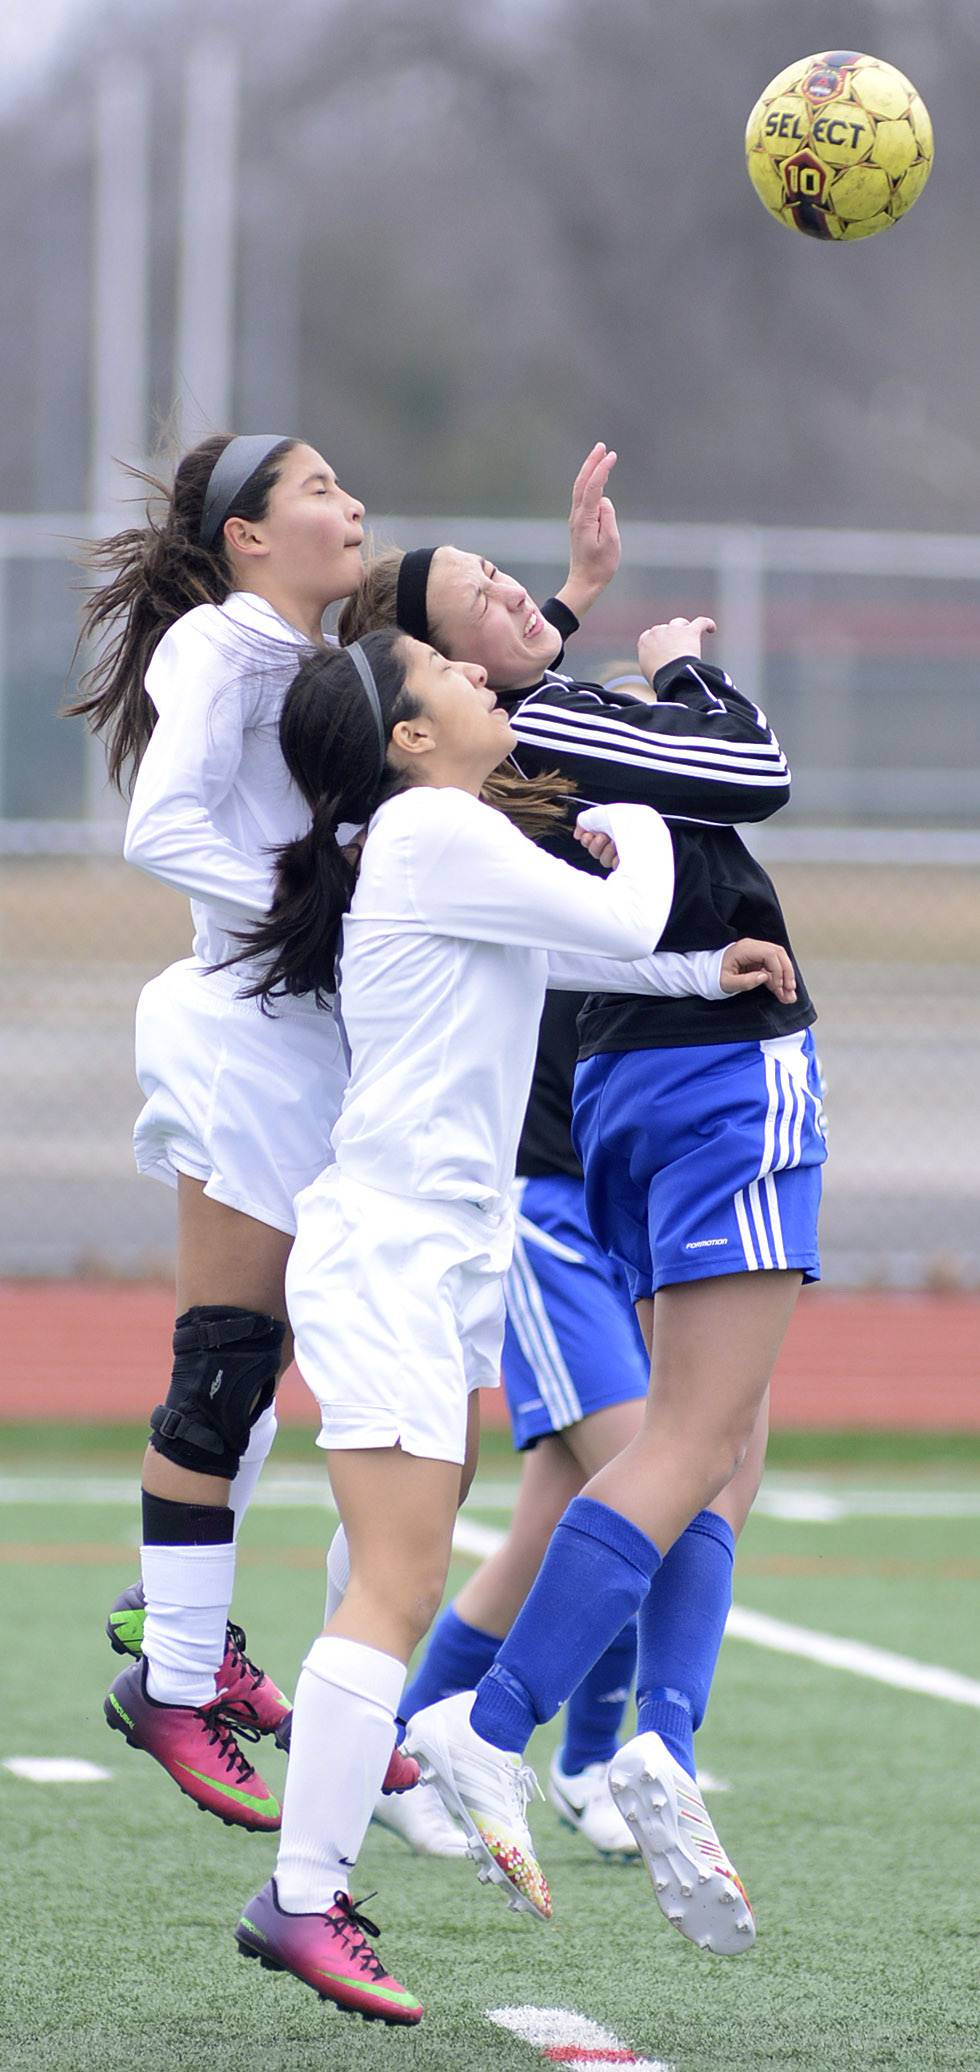 West Aurora's Jocelyn Ferrar (left) and Cristina Sosa (center) and Geneva's Megan Fitz leap in tandem for a header.